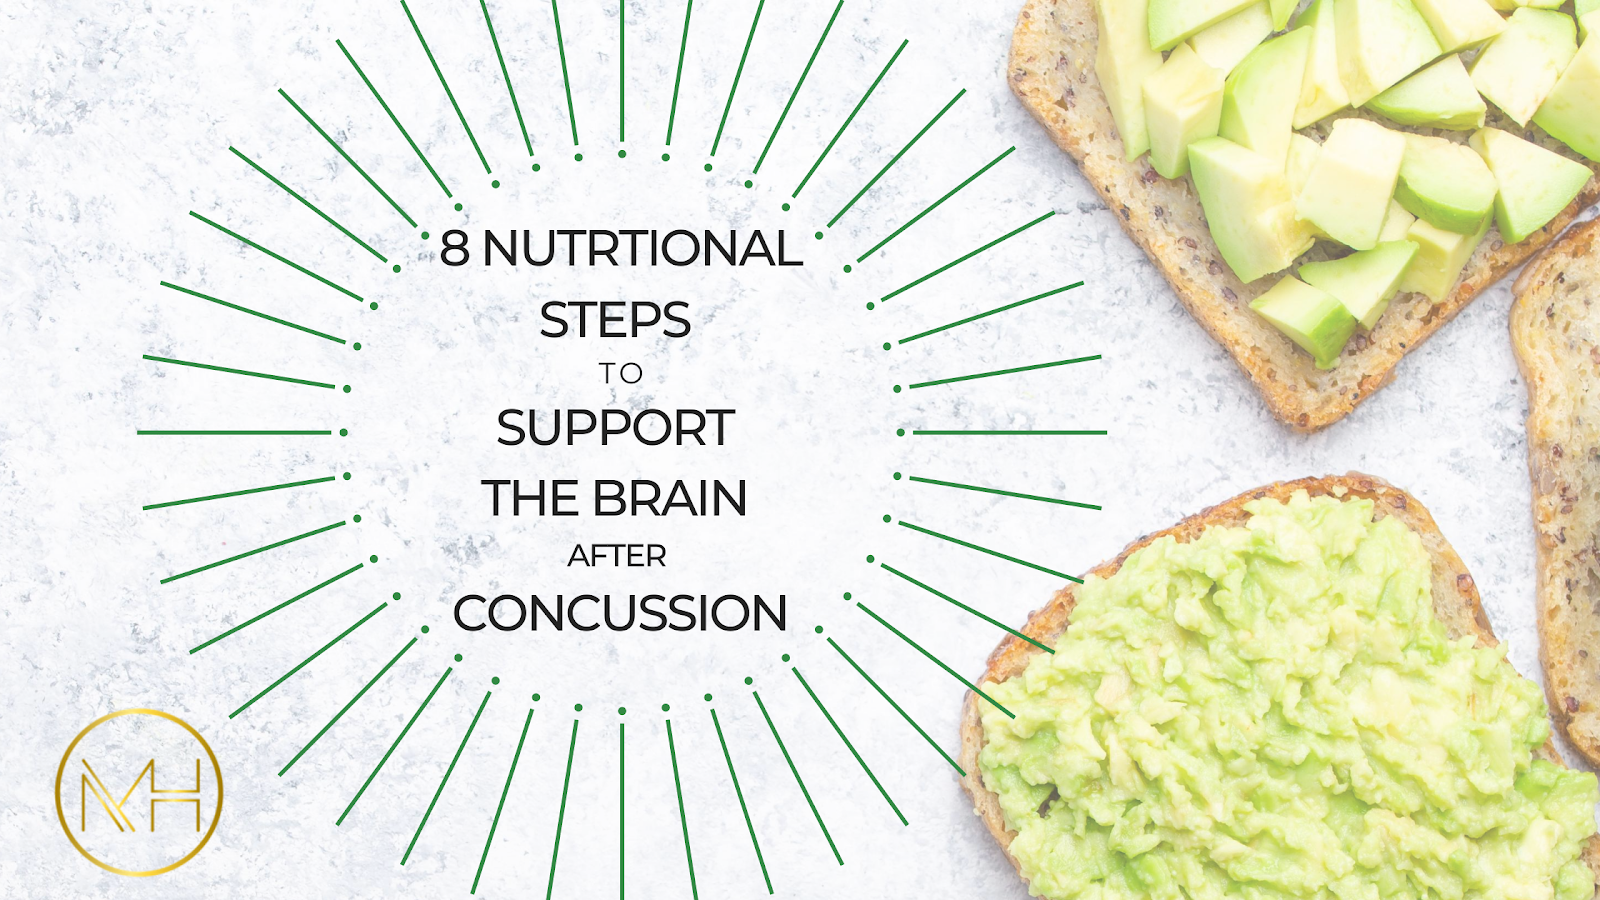 8 Nutritional Steps To Support The Brain After Concussion